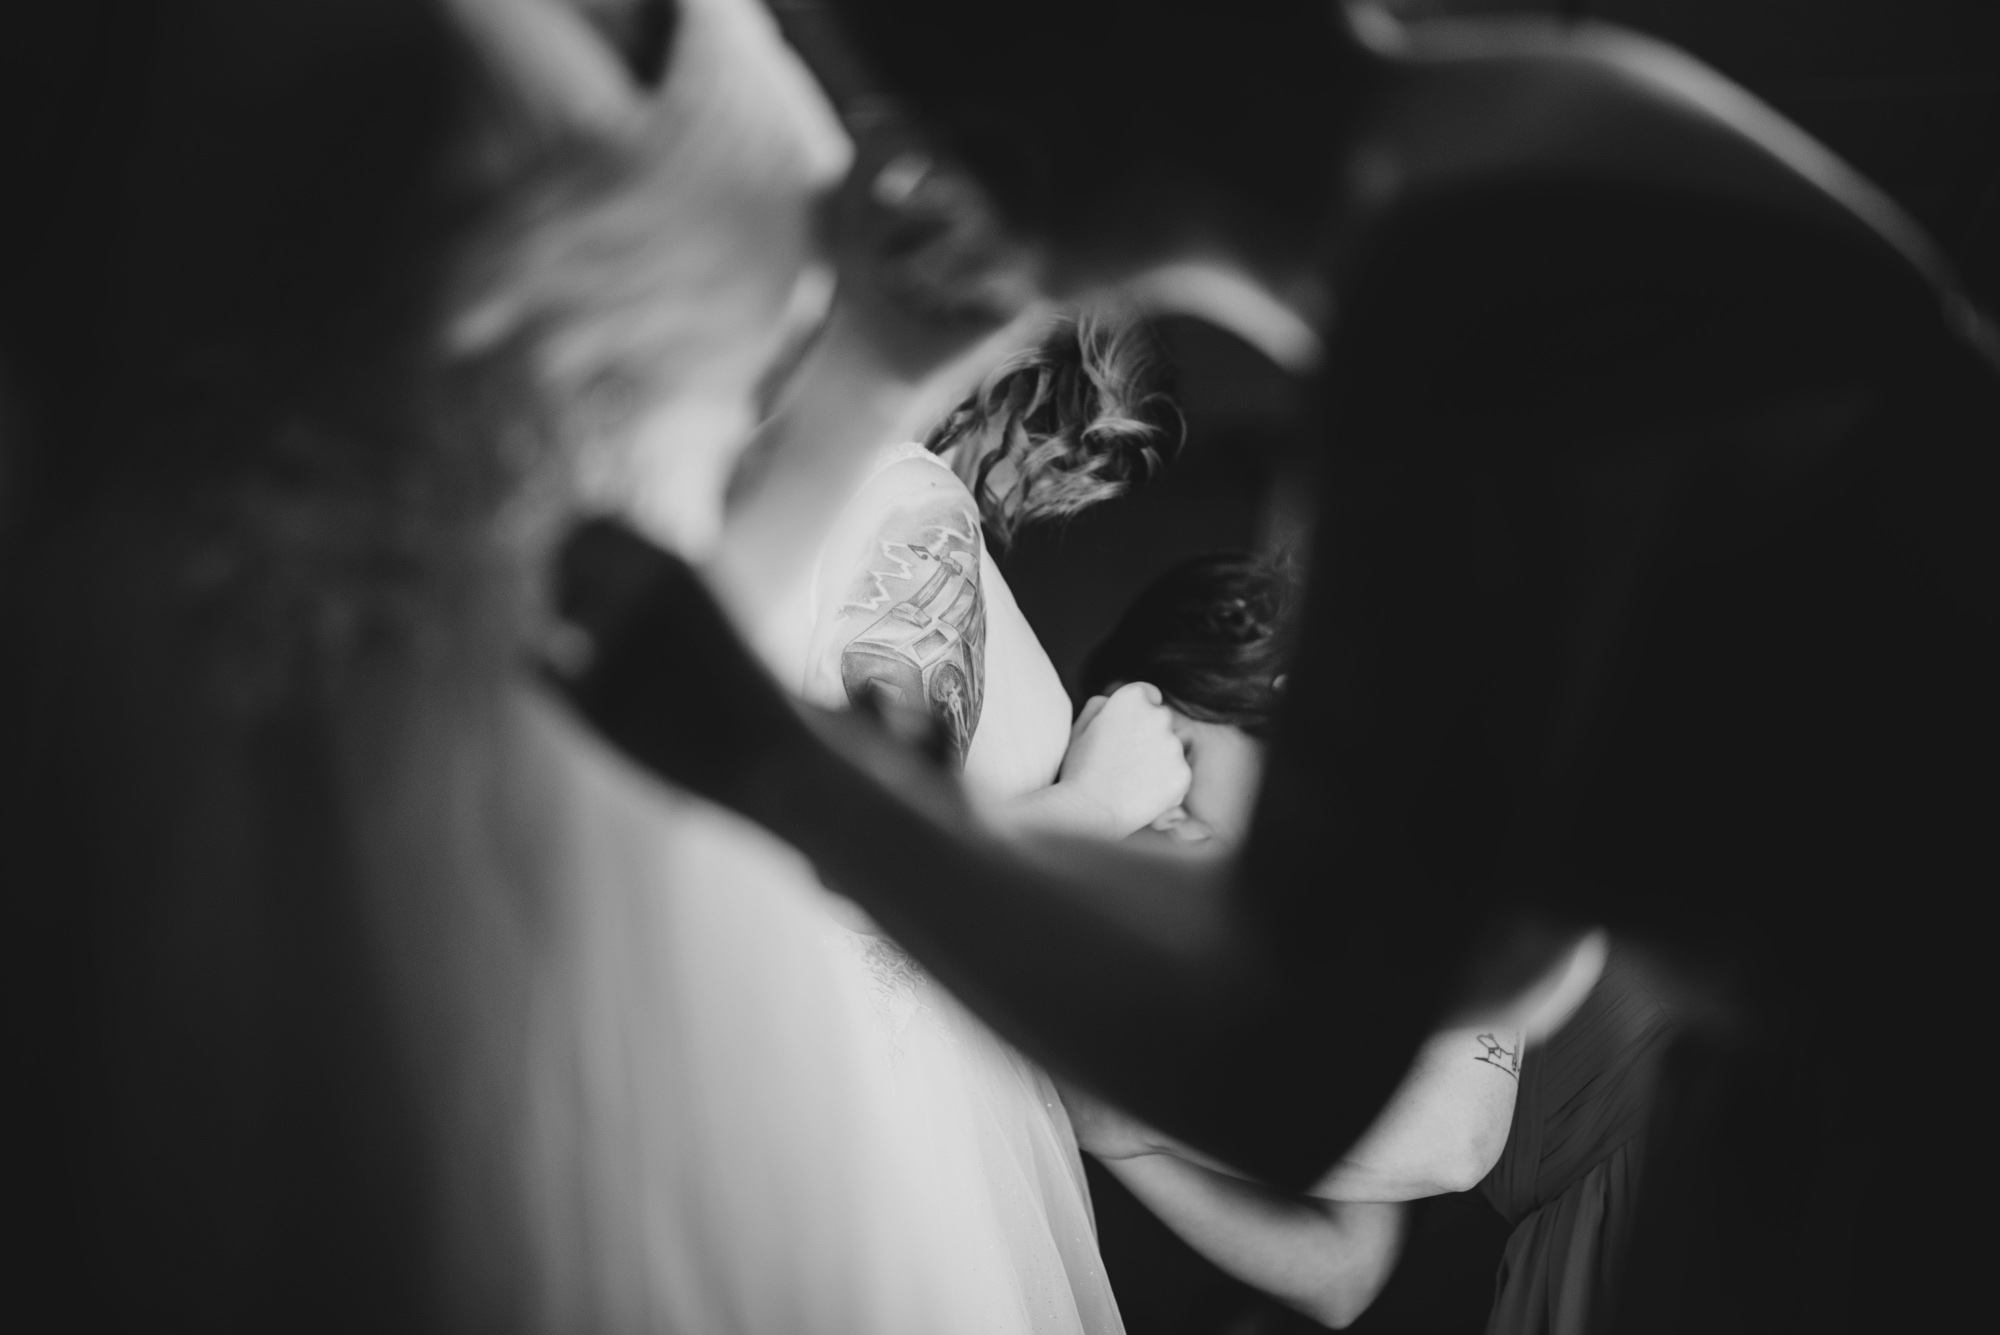 lindseyjanephoto_wedding0017.jpg